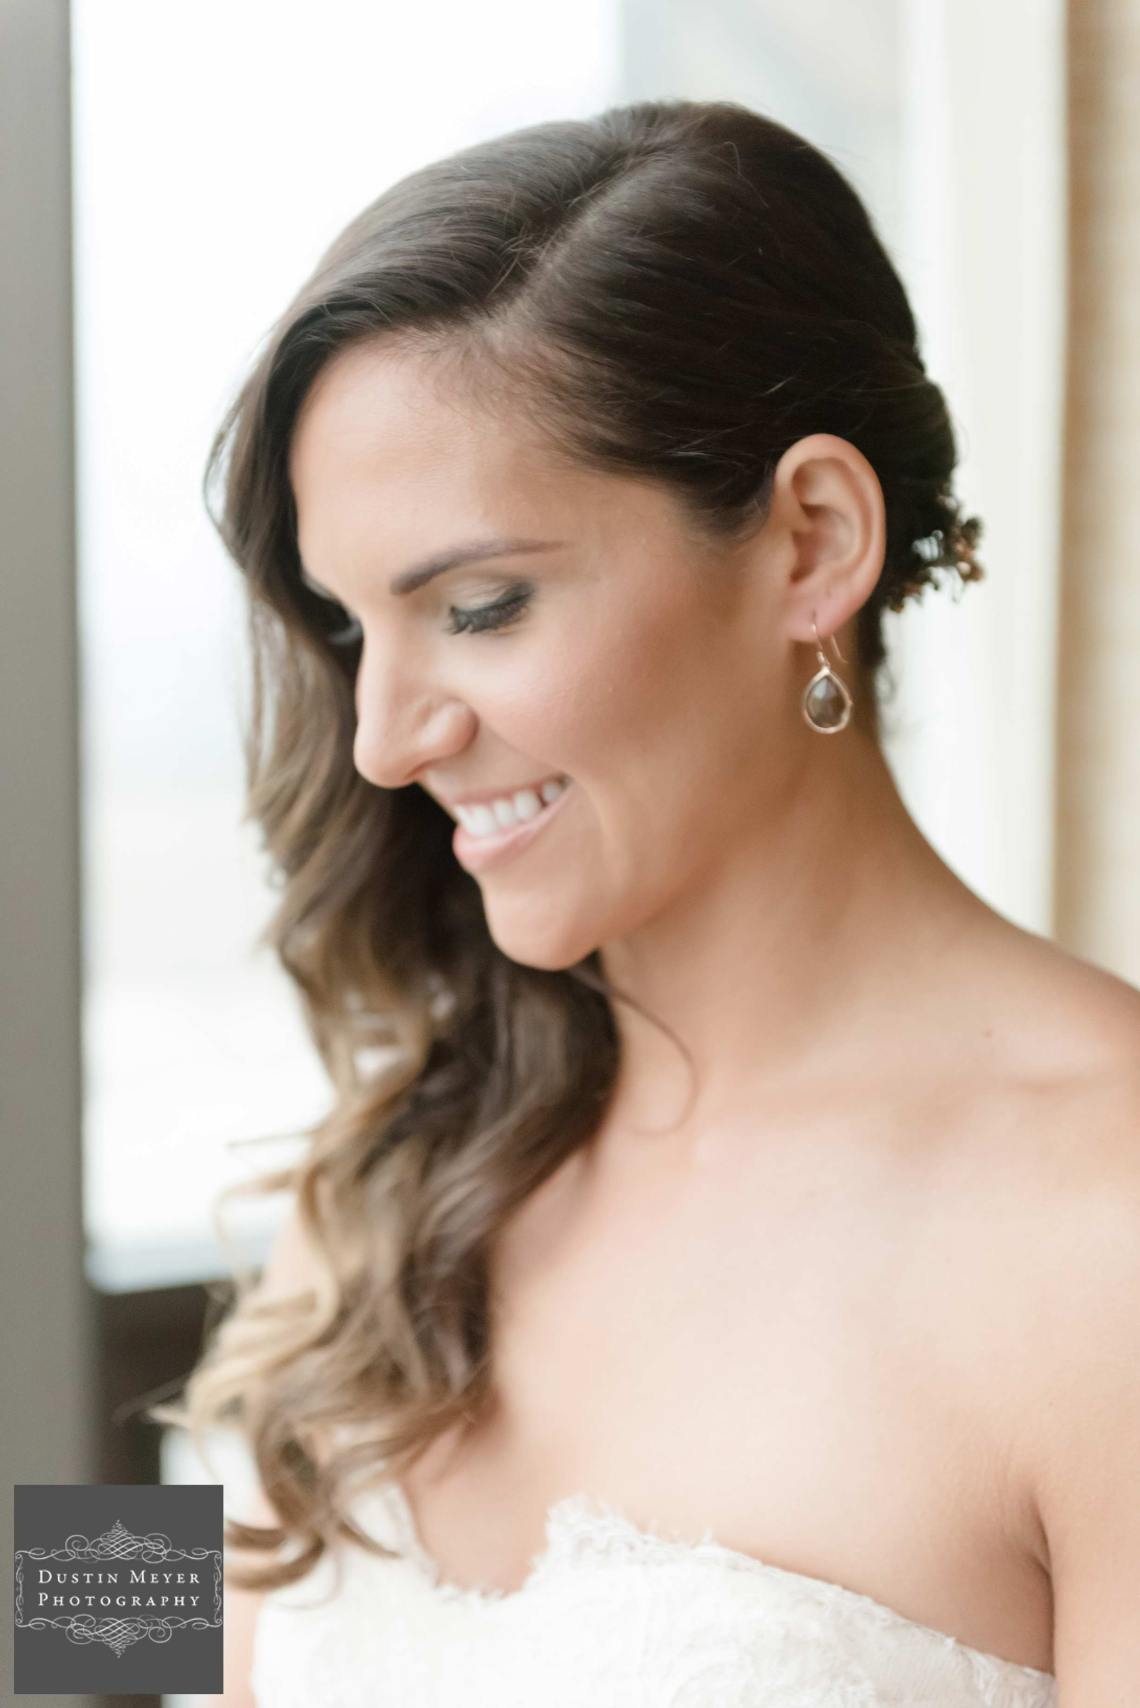 brunette bride natural light wearing a strapless bridal gown, earrings, jewelry, with a smile, austin wedding photographer